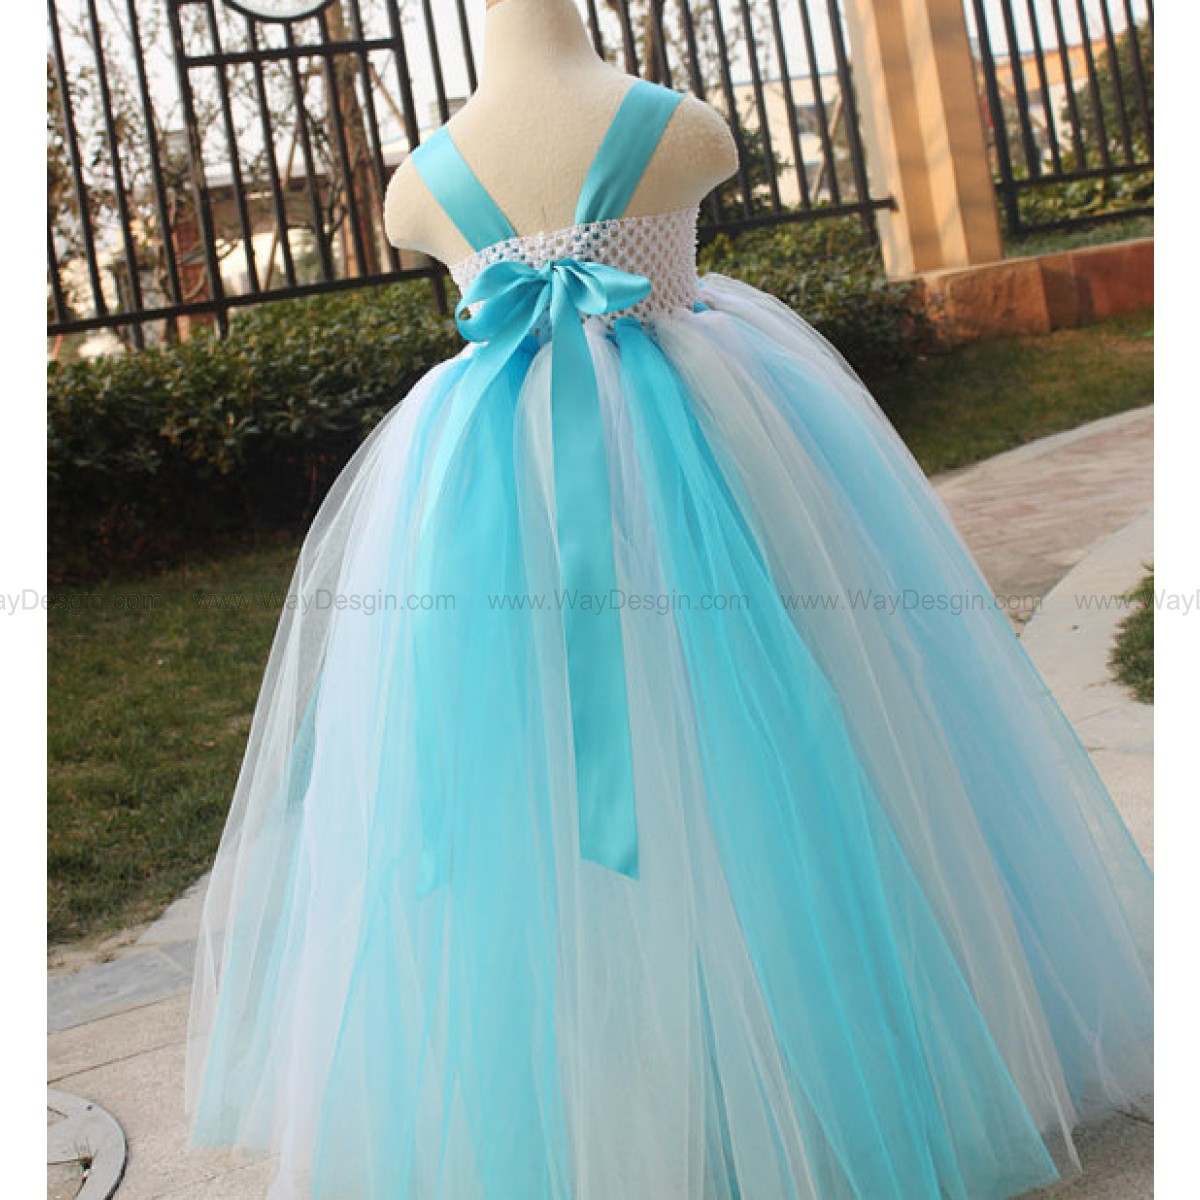 Flower Girl Dress Turquoise Grey white tutu dress baby dress toddler birthday dress wedding dress